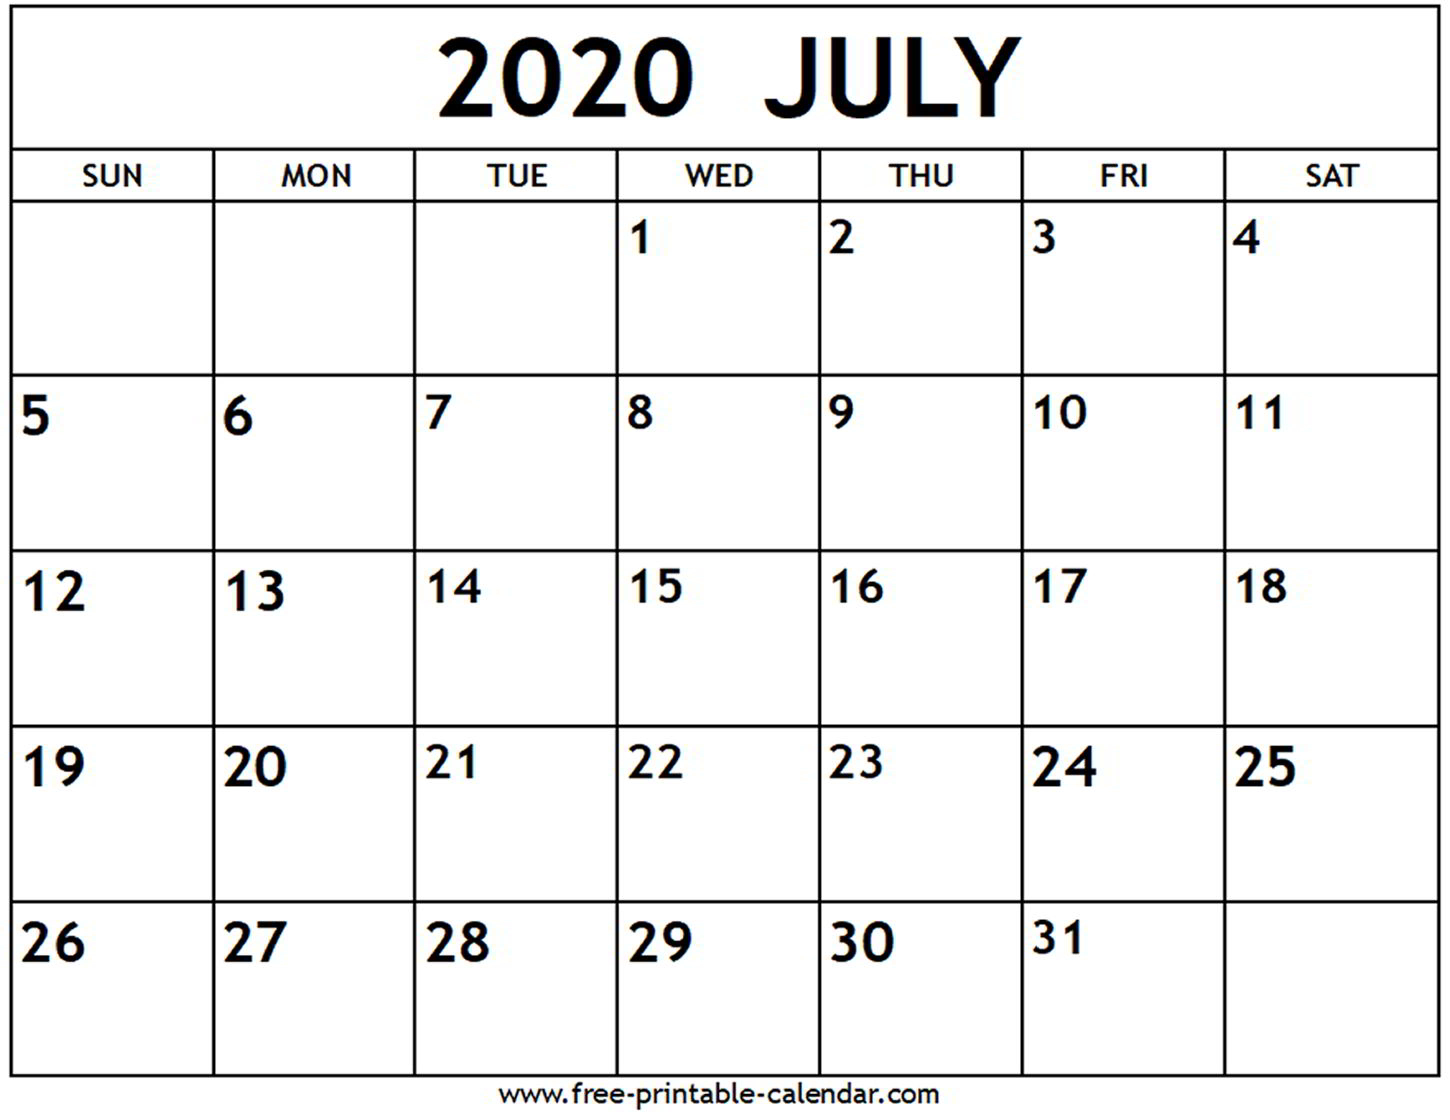 2020 July Calendar - Temusi